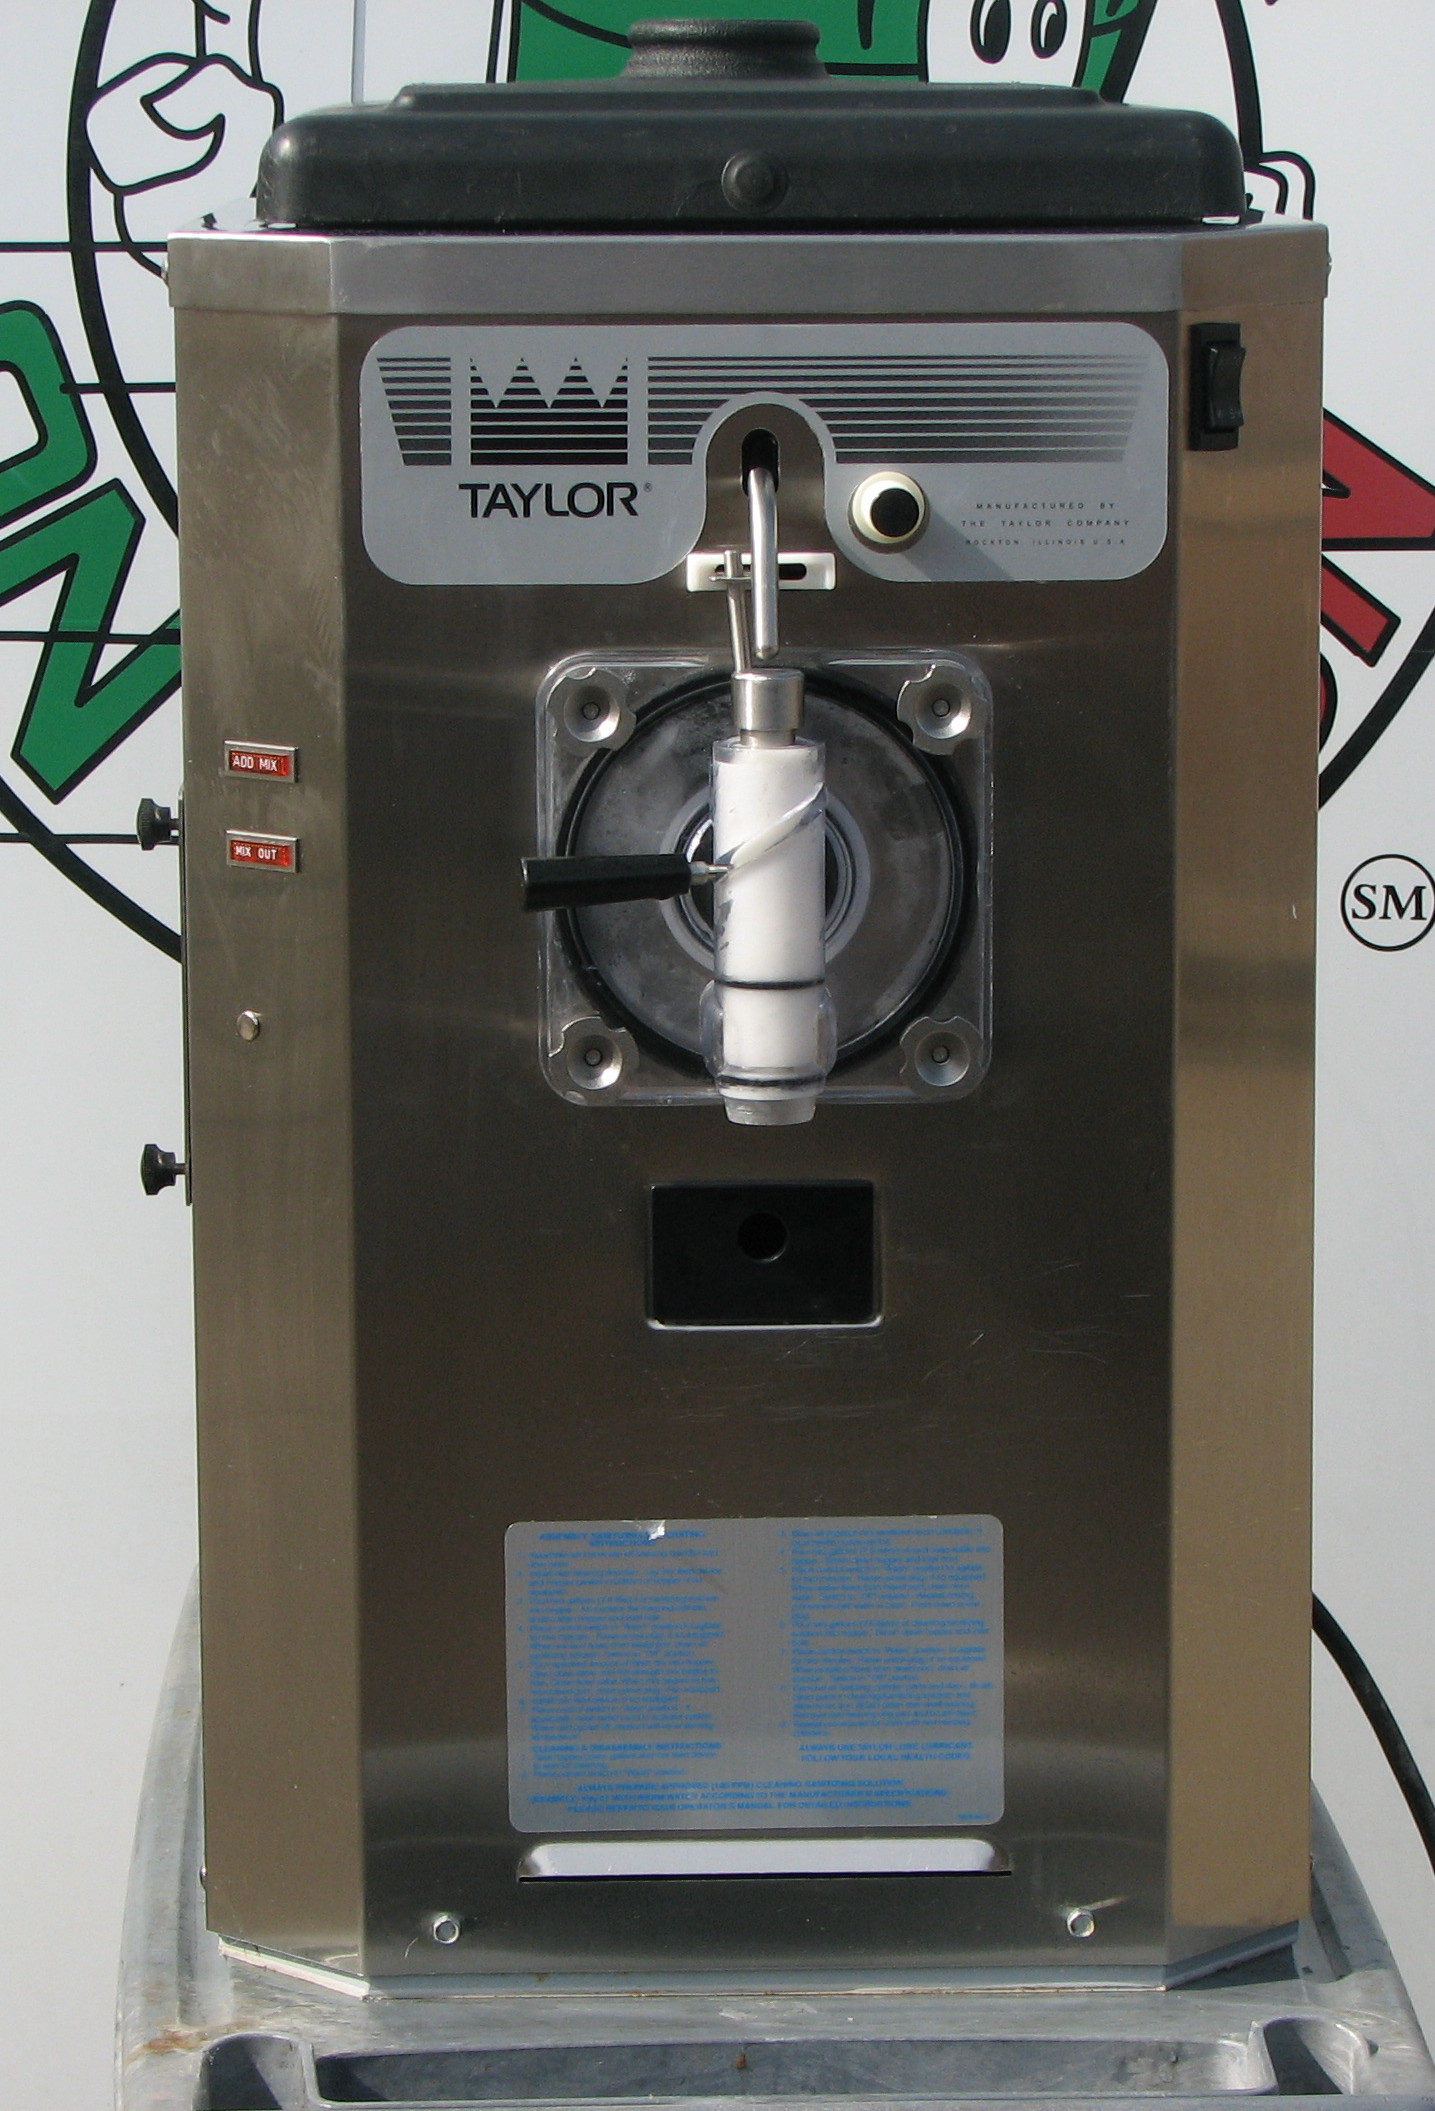 Taylor 430 Margarita Machine